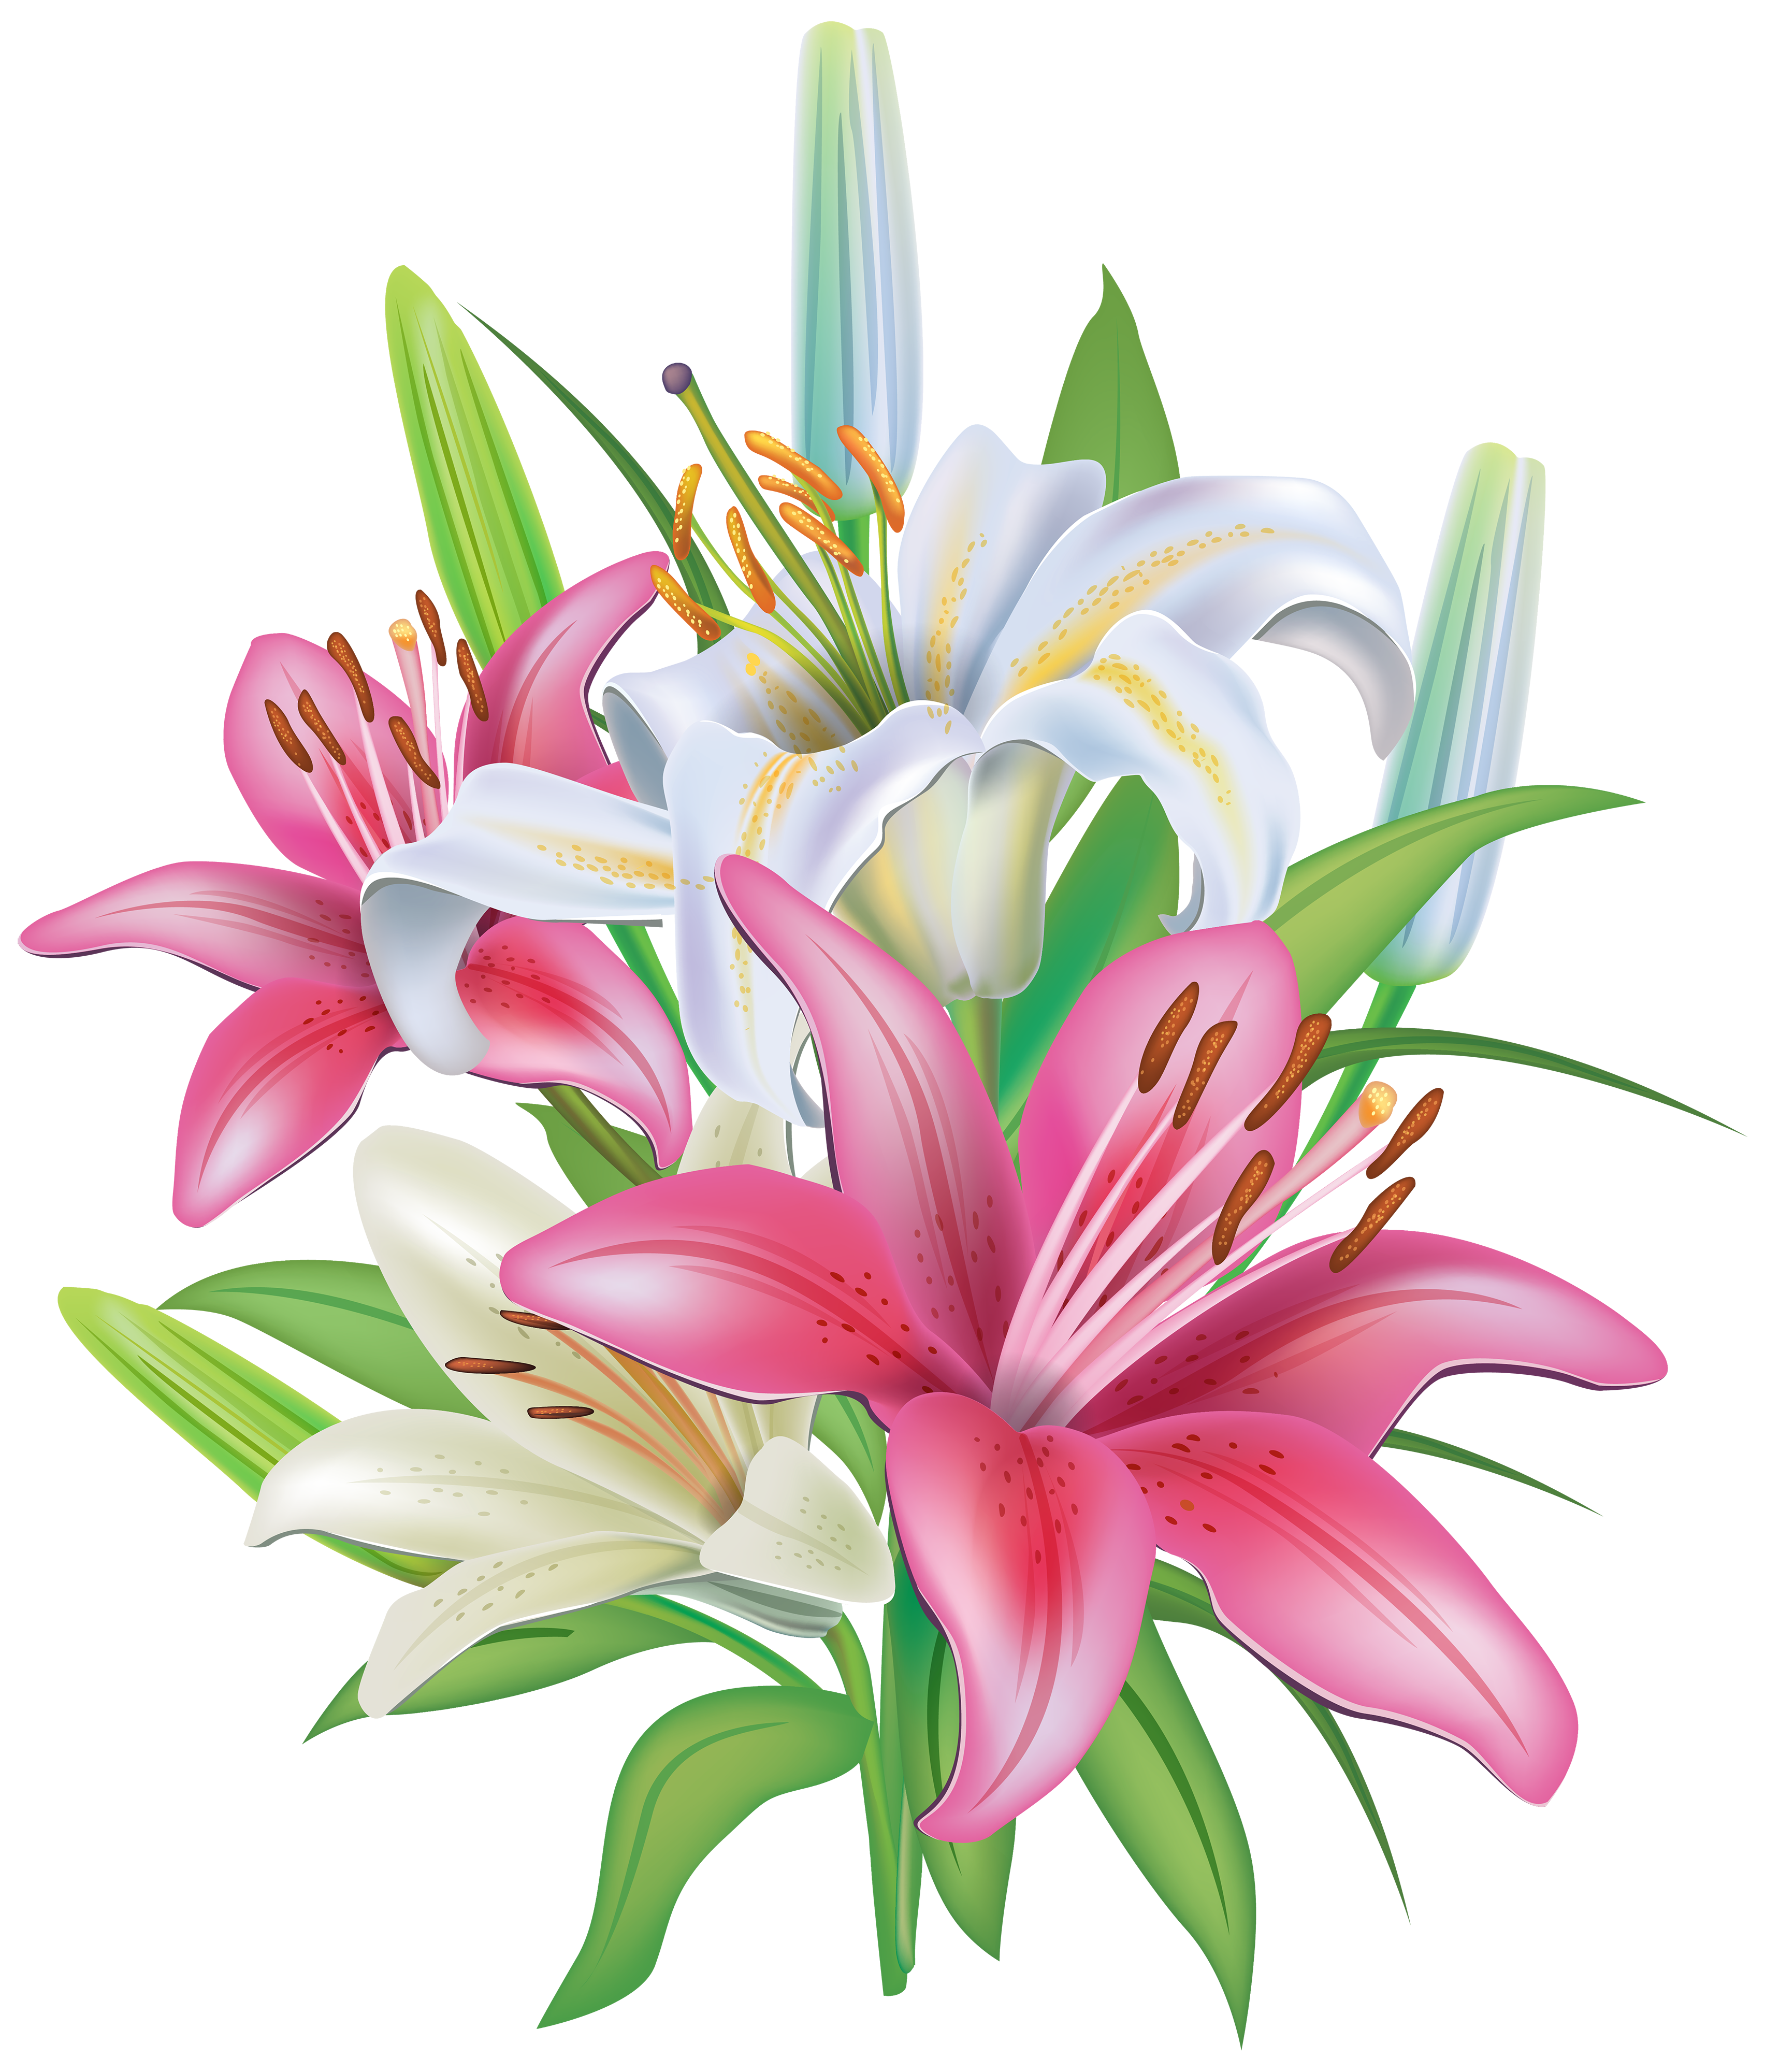 Star lily flower black and white clipart svg freeuse download Pink lilies clipart #6 | Flores | Pinterest | Pink lily and Clipart ... svg freeuse download